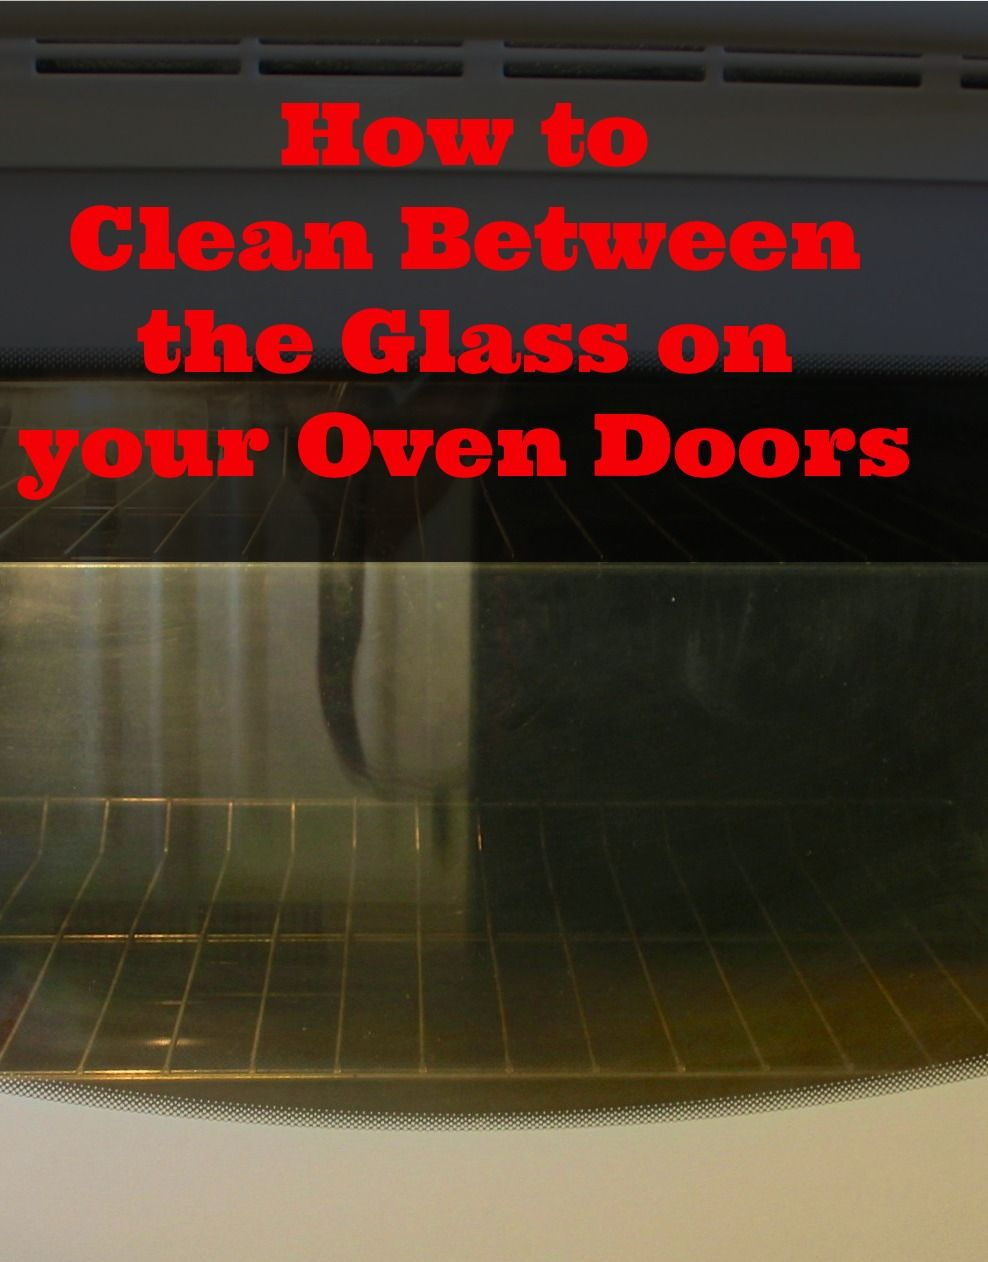 How to clean glass oven doors oven doors and 30th how to clean glass oven doors planetlyrics Image collections